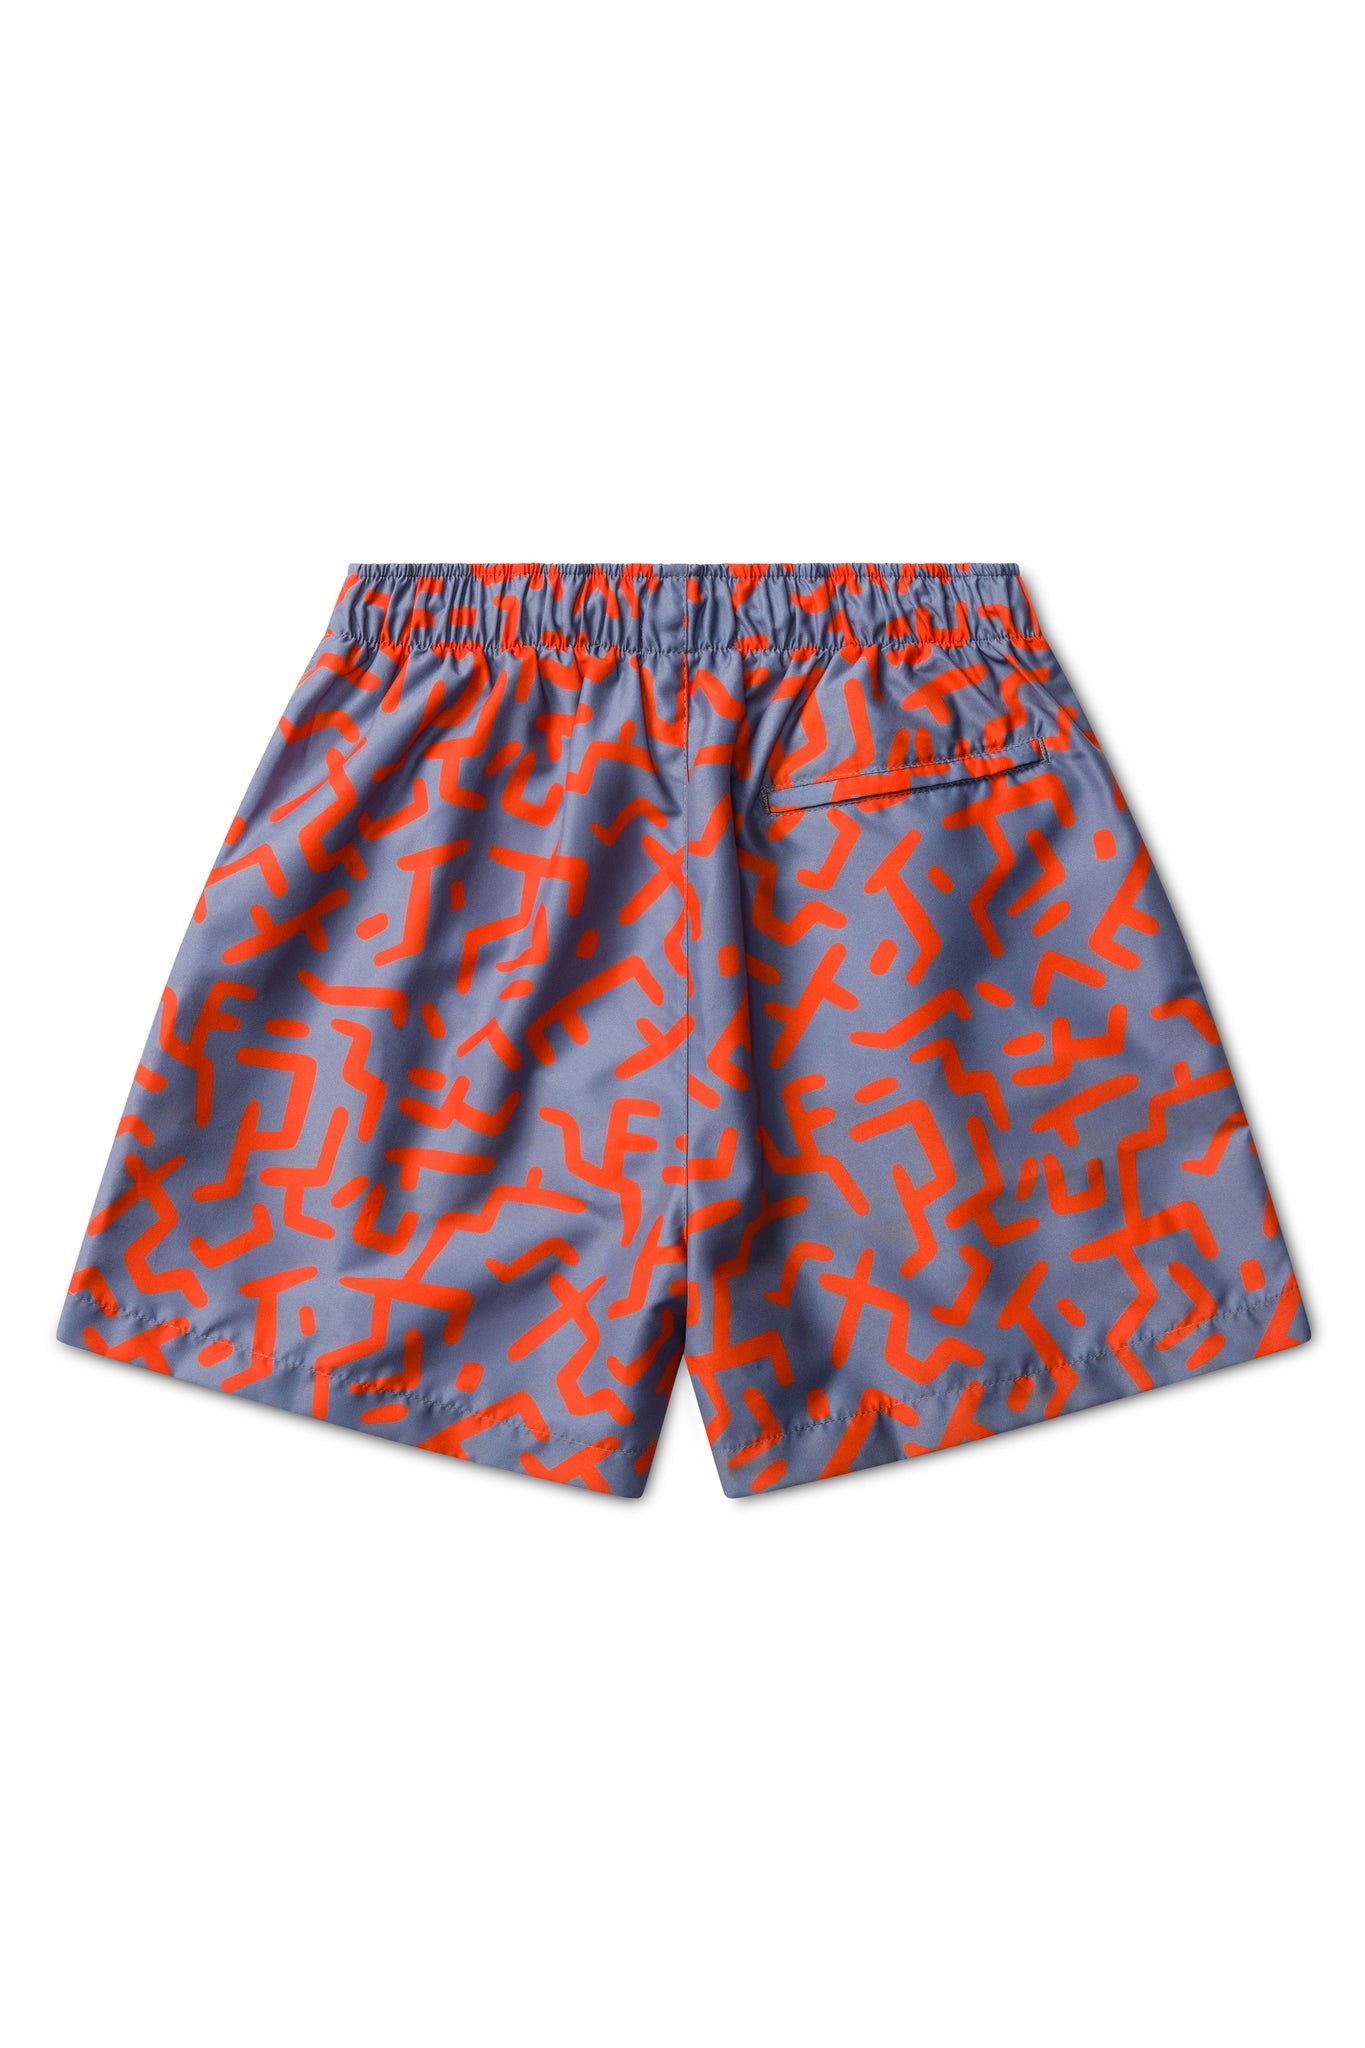 Congo Print with Blue Base Swimmers